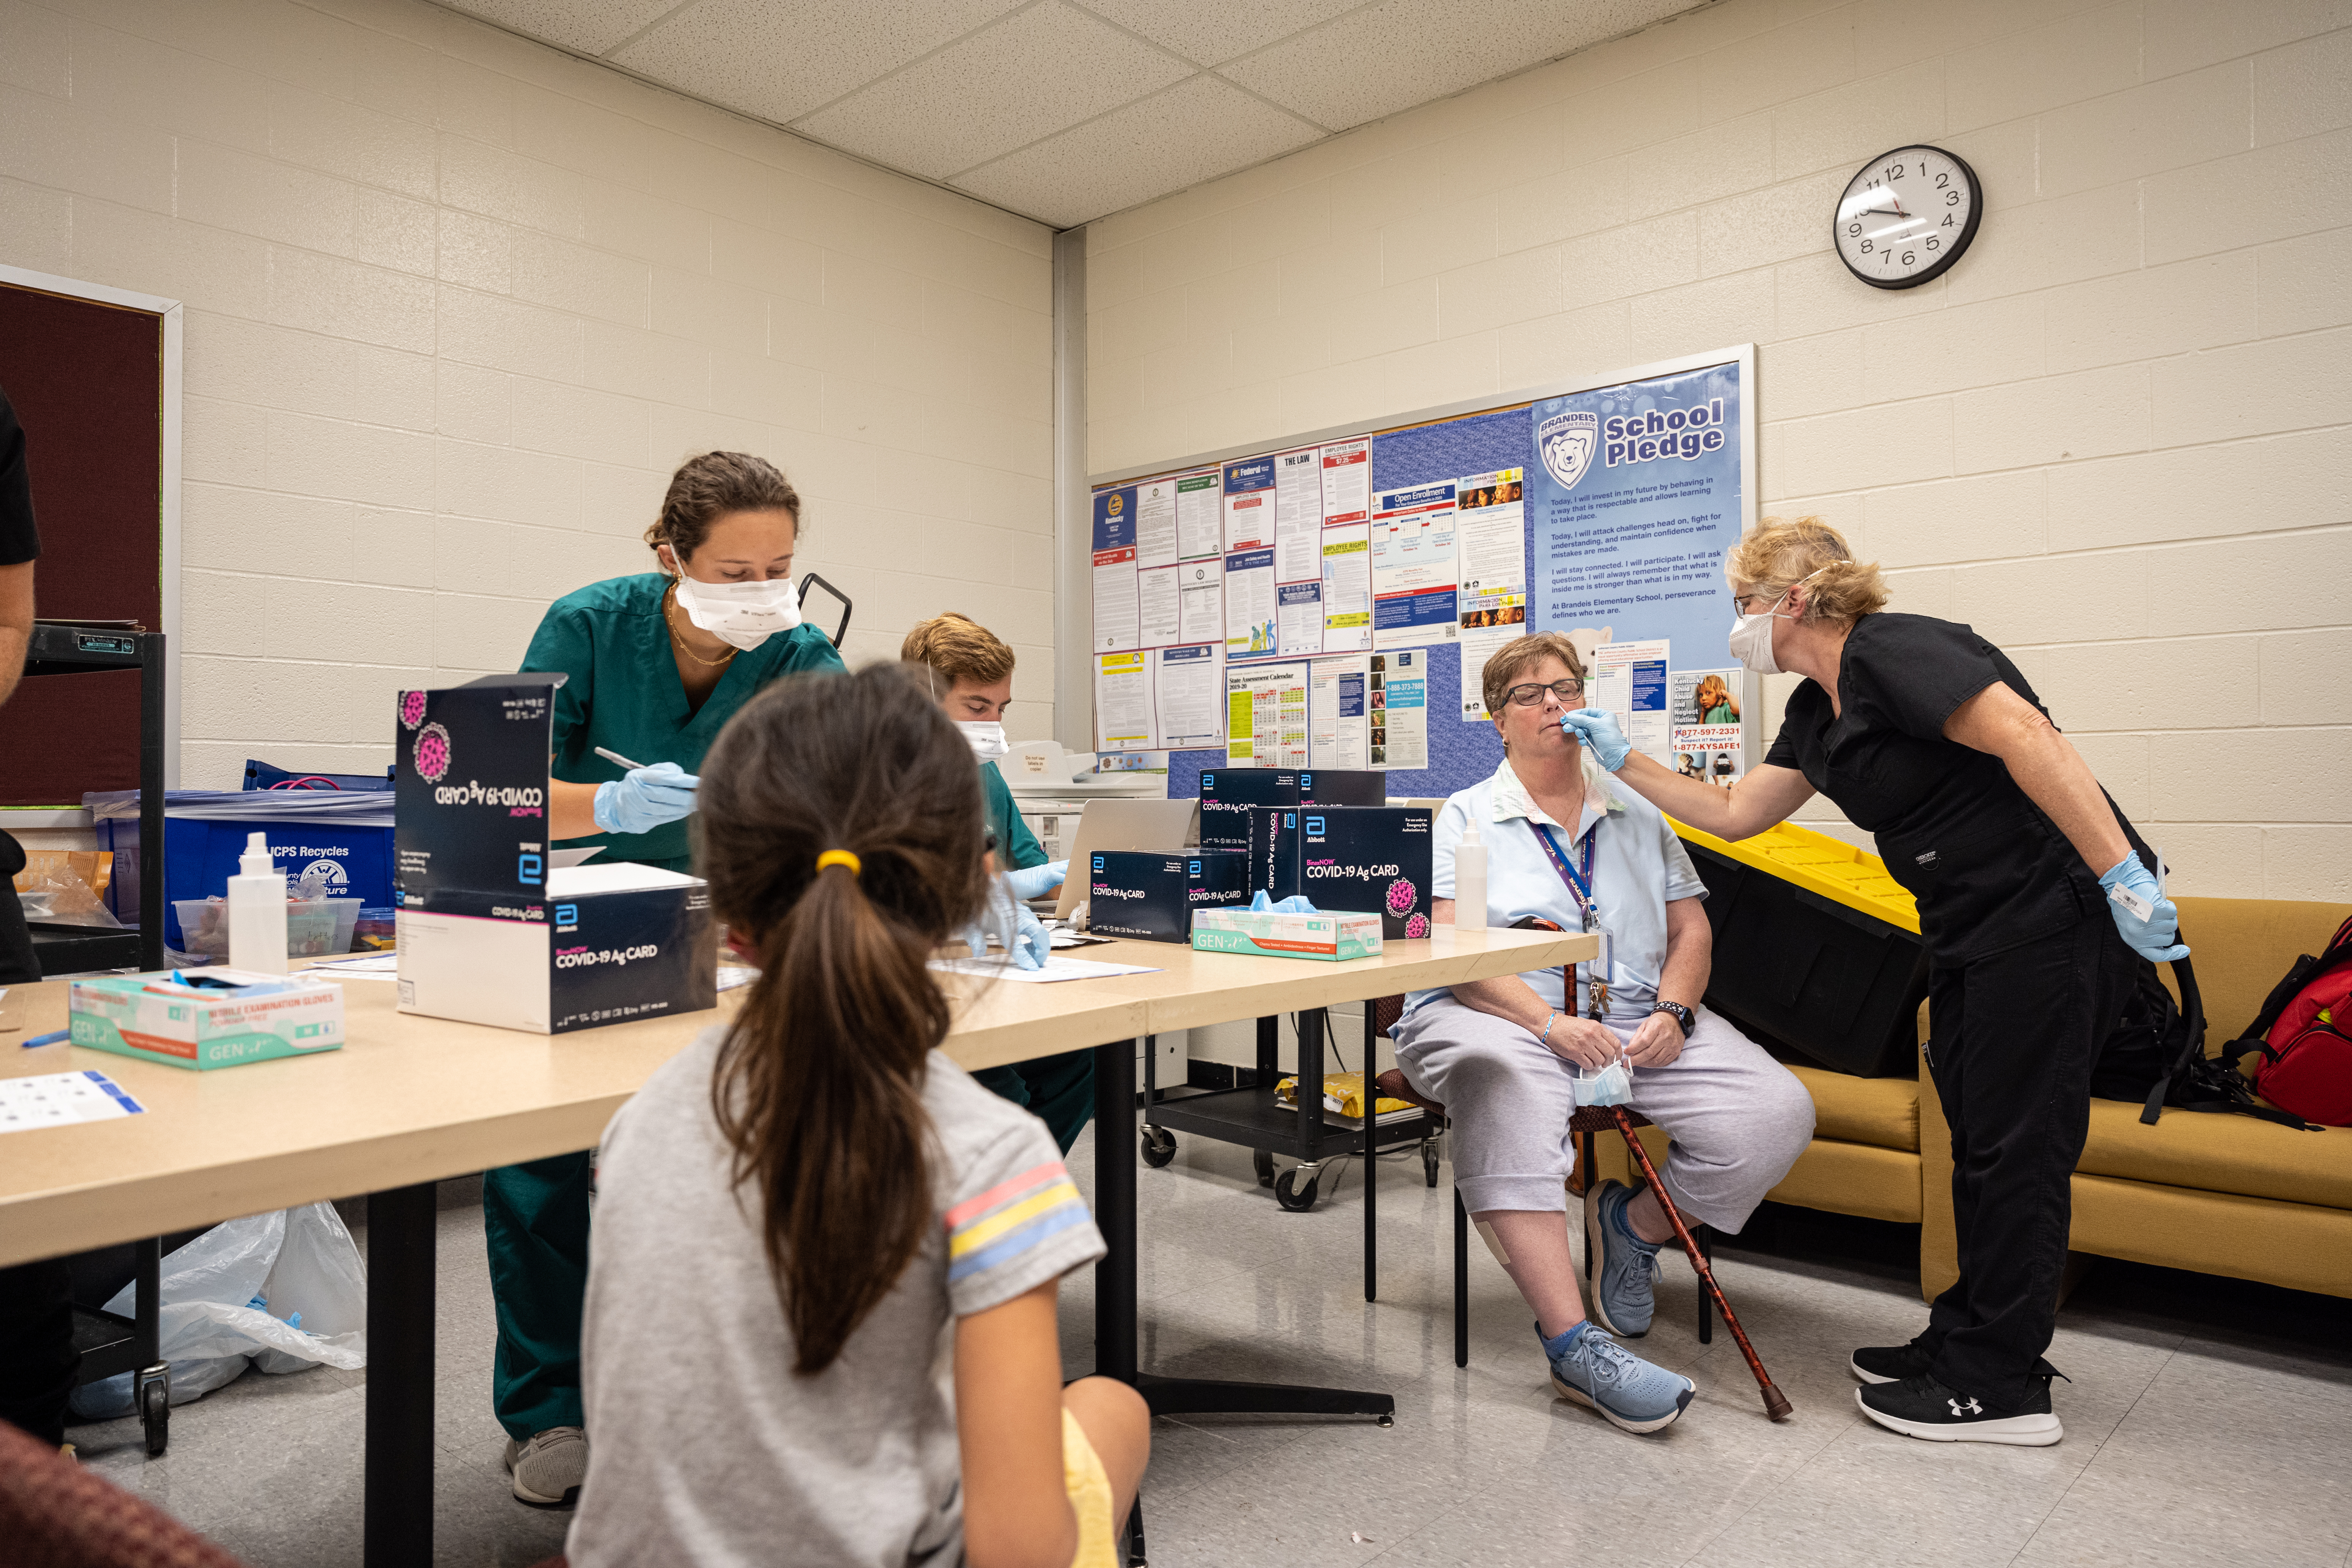 Health care professionals conduct COVID testing in an office with white brick walls.